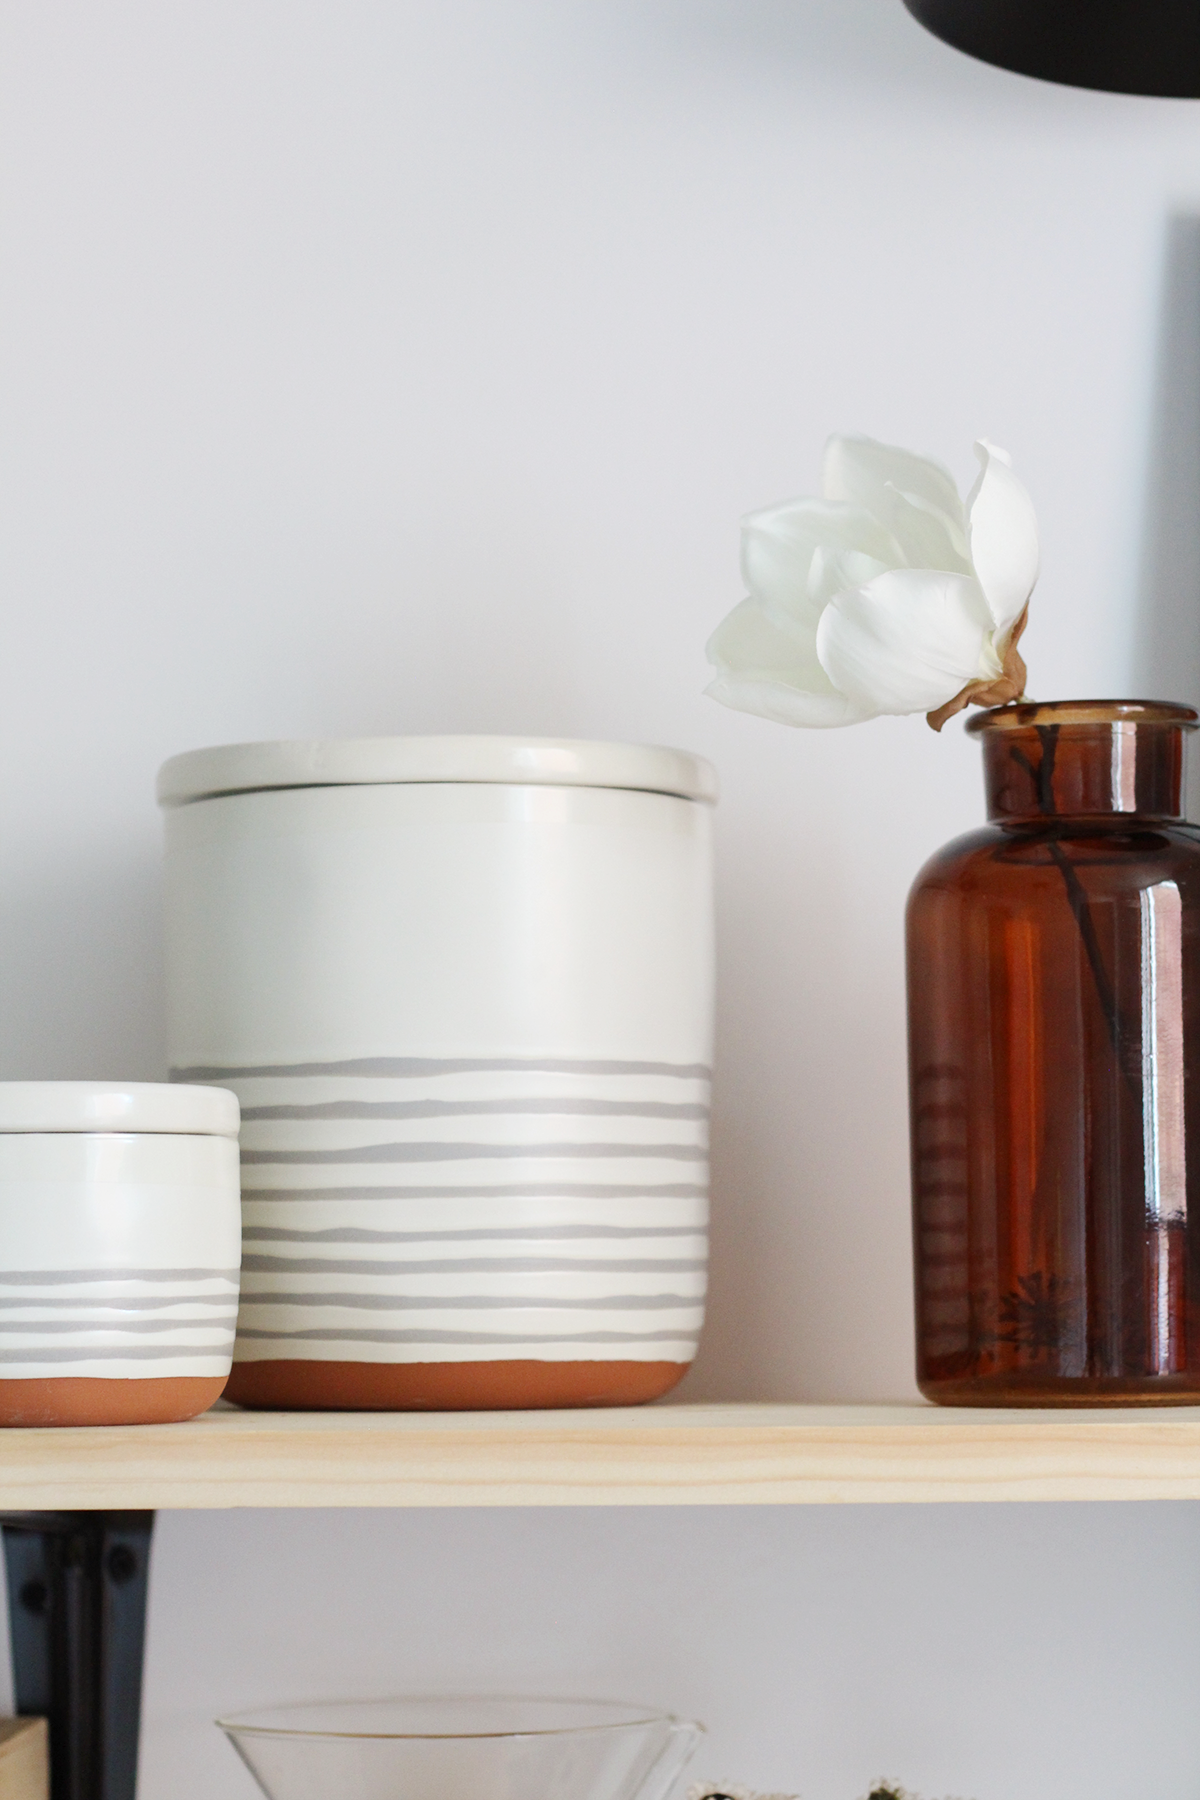 Take kitchen items out of their package and put them into attractive canisters and vessels. - How to decorate your open kitchen shelving.